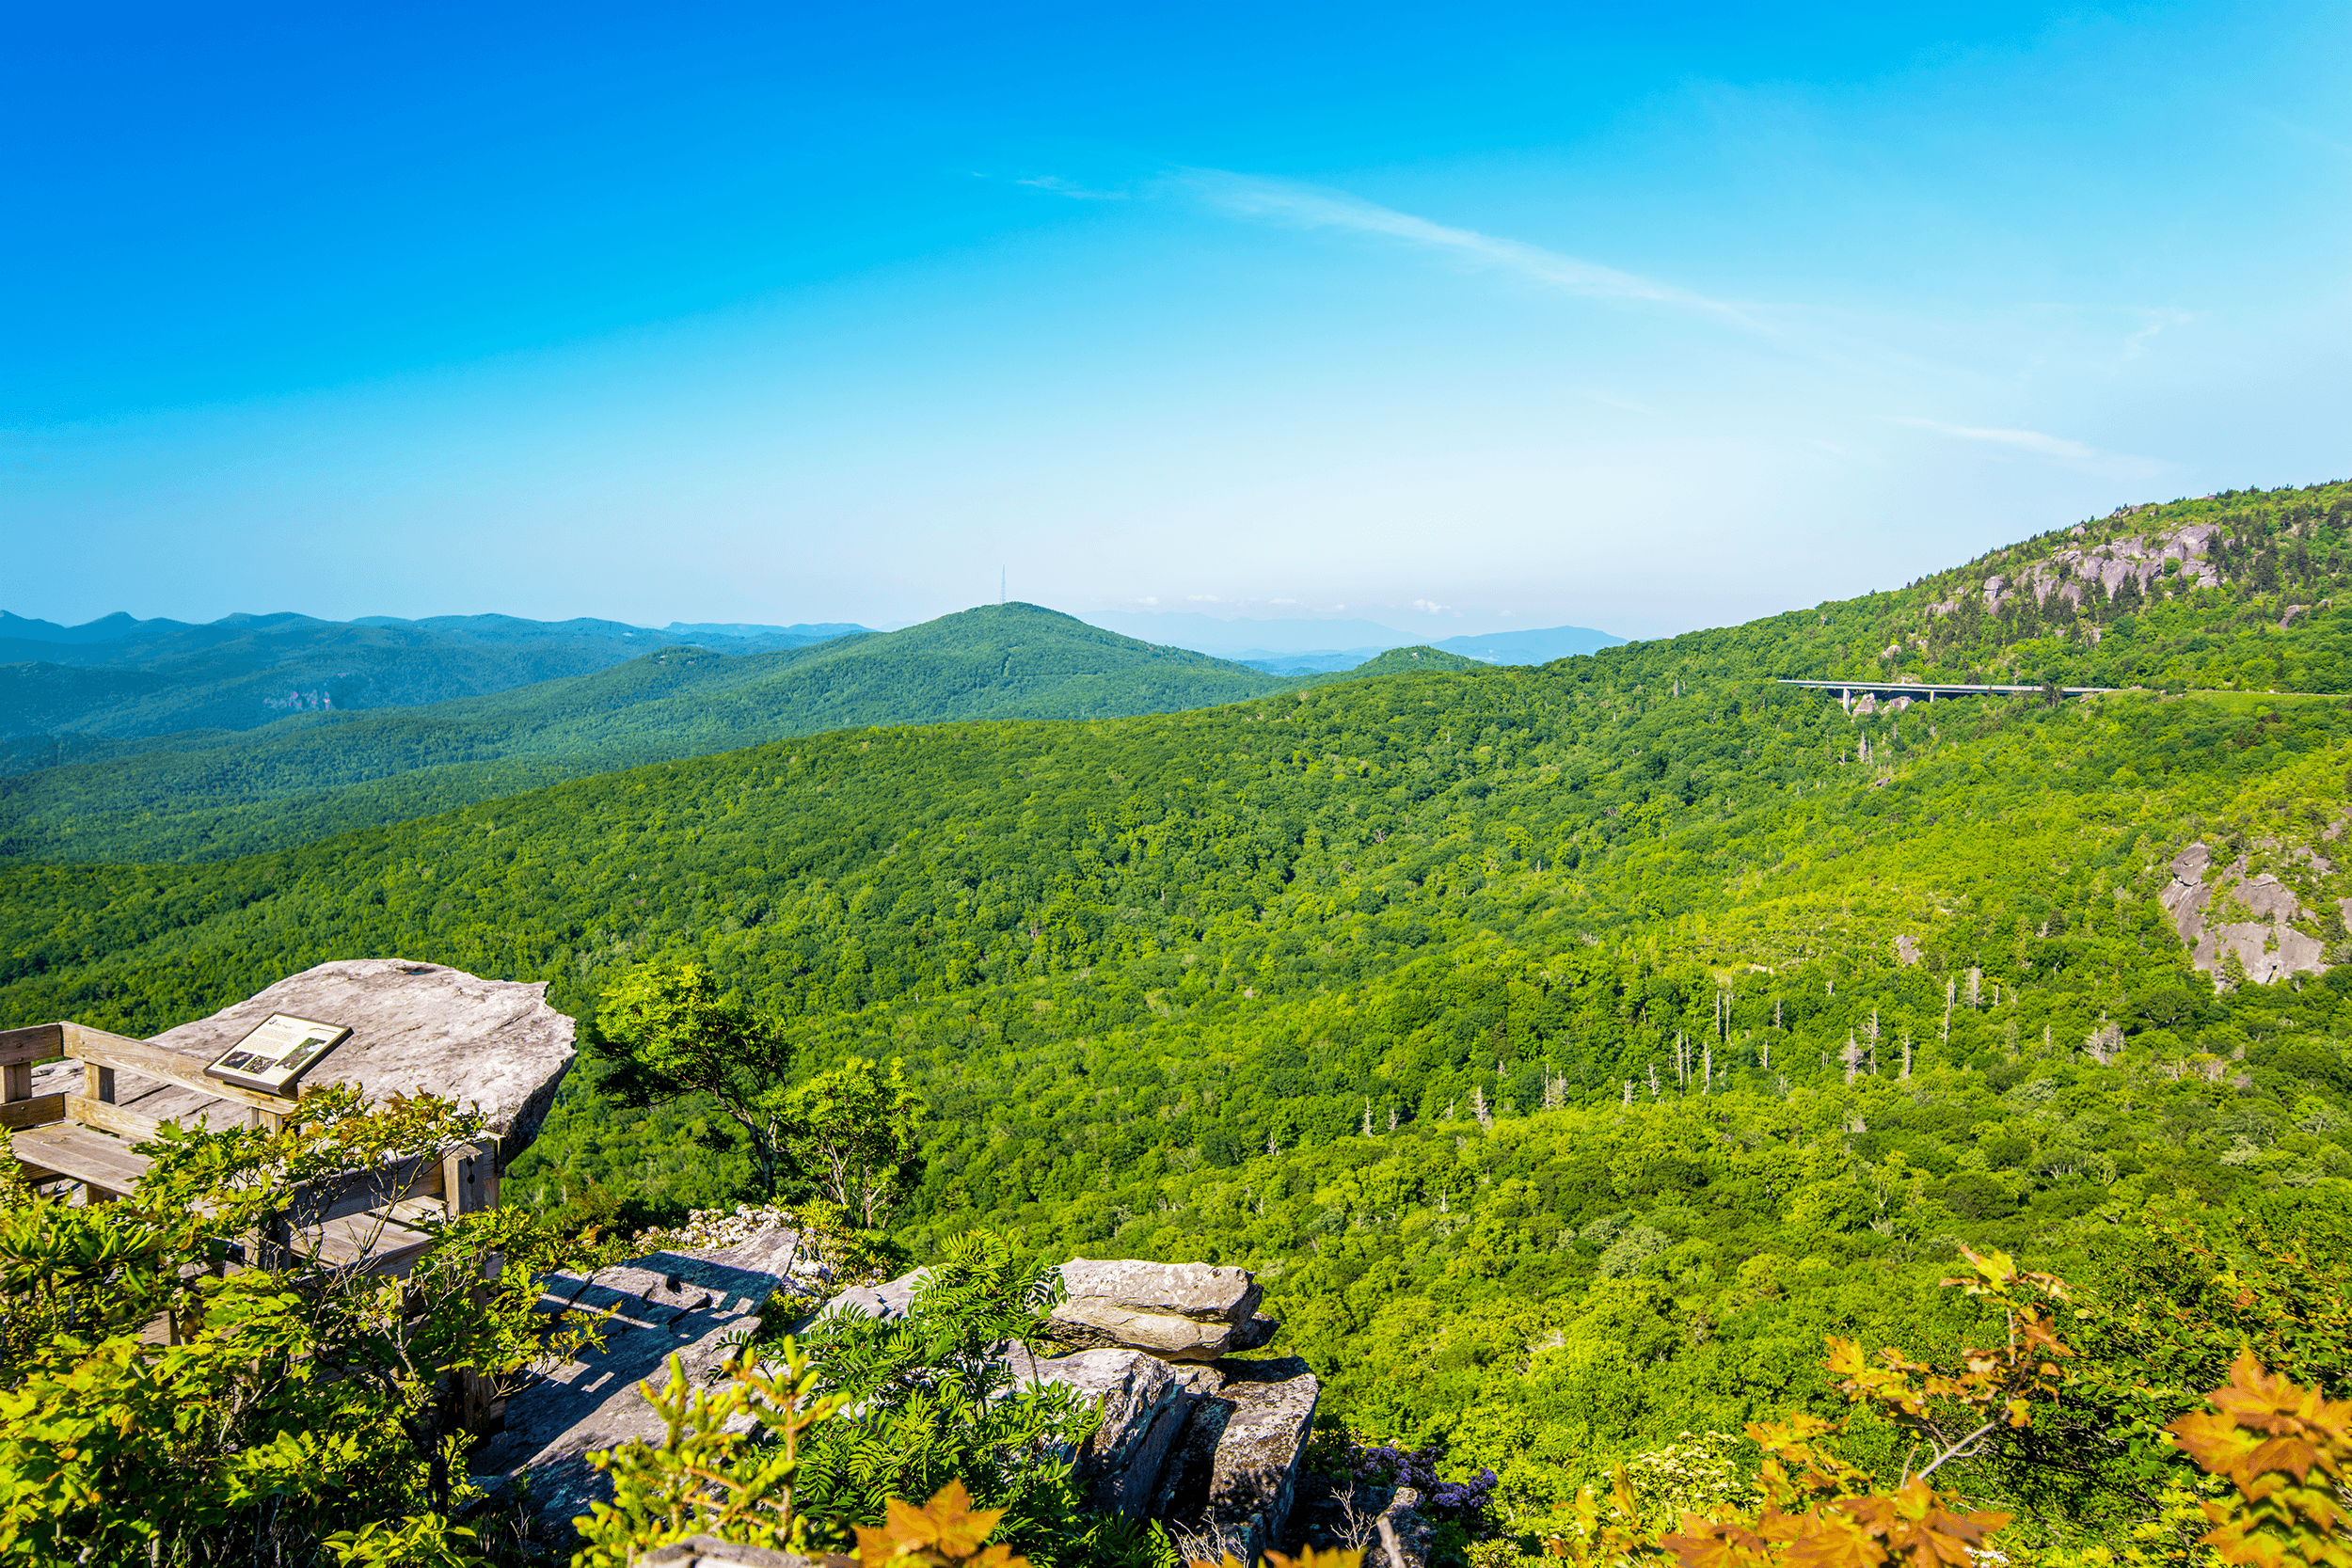 The  Rough Ridge Overlook  is located just 2 miles (3 km) from the Linn Cove Viaduct and offers not just picture-perfect views of this construction marvel, but also breathtaking panoramic views of  Grandfather Mountain  towering high above the  Linn Cove Viaduct .